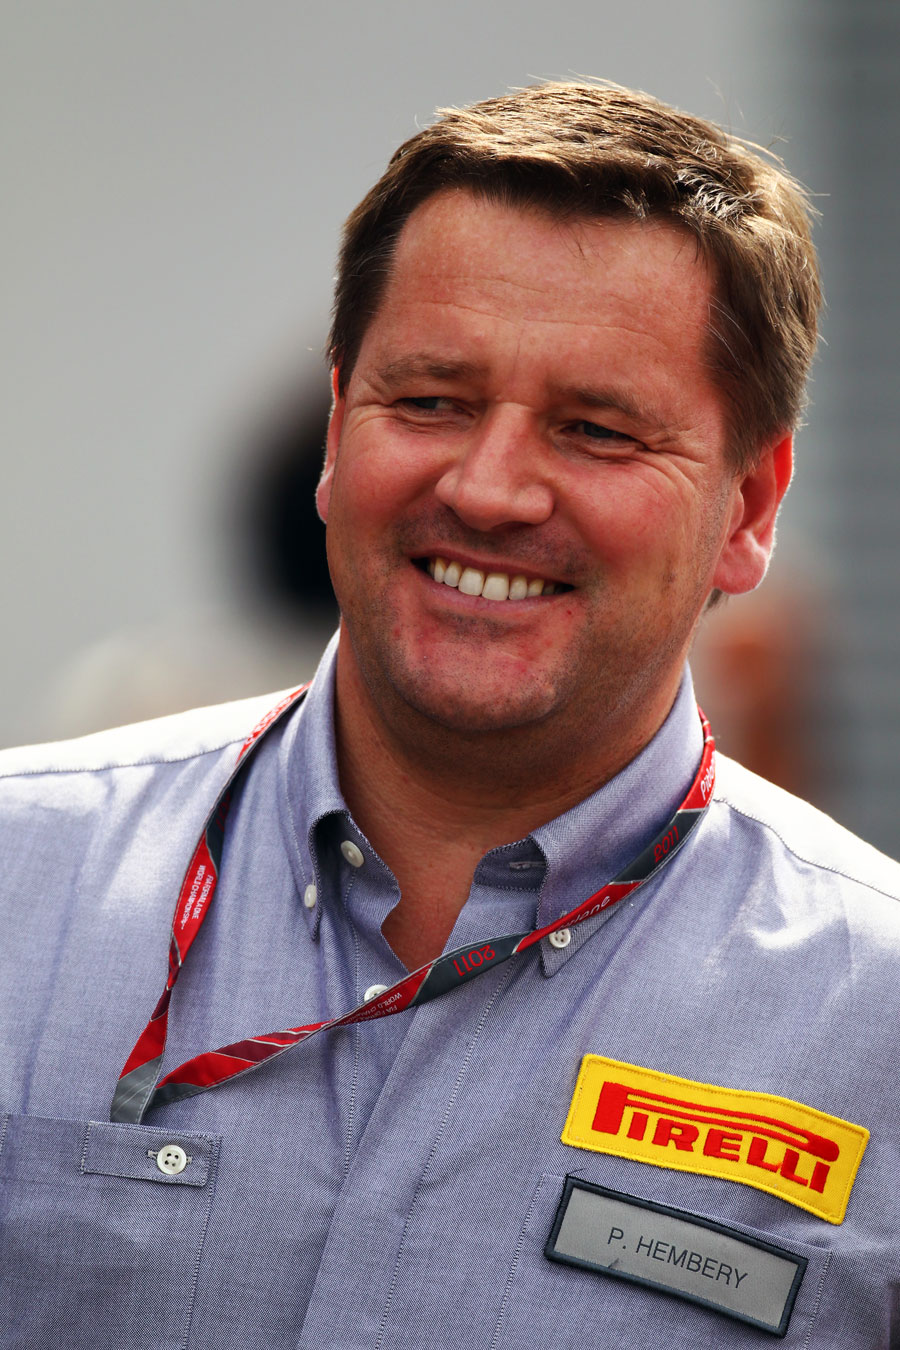 Entrevista exclusiva a PAUL HEMBERY – Director de Pirelli Motorsport